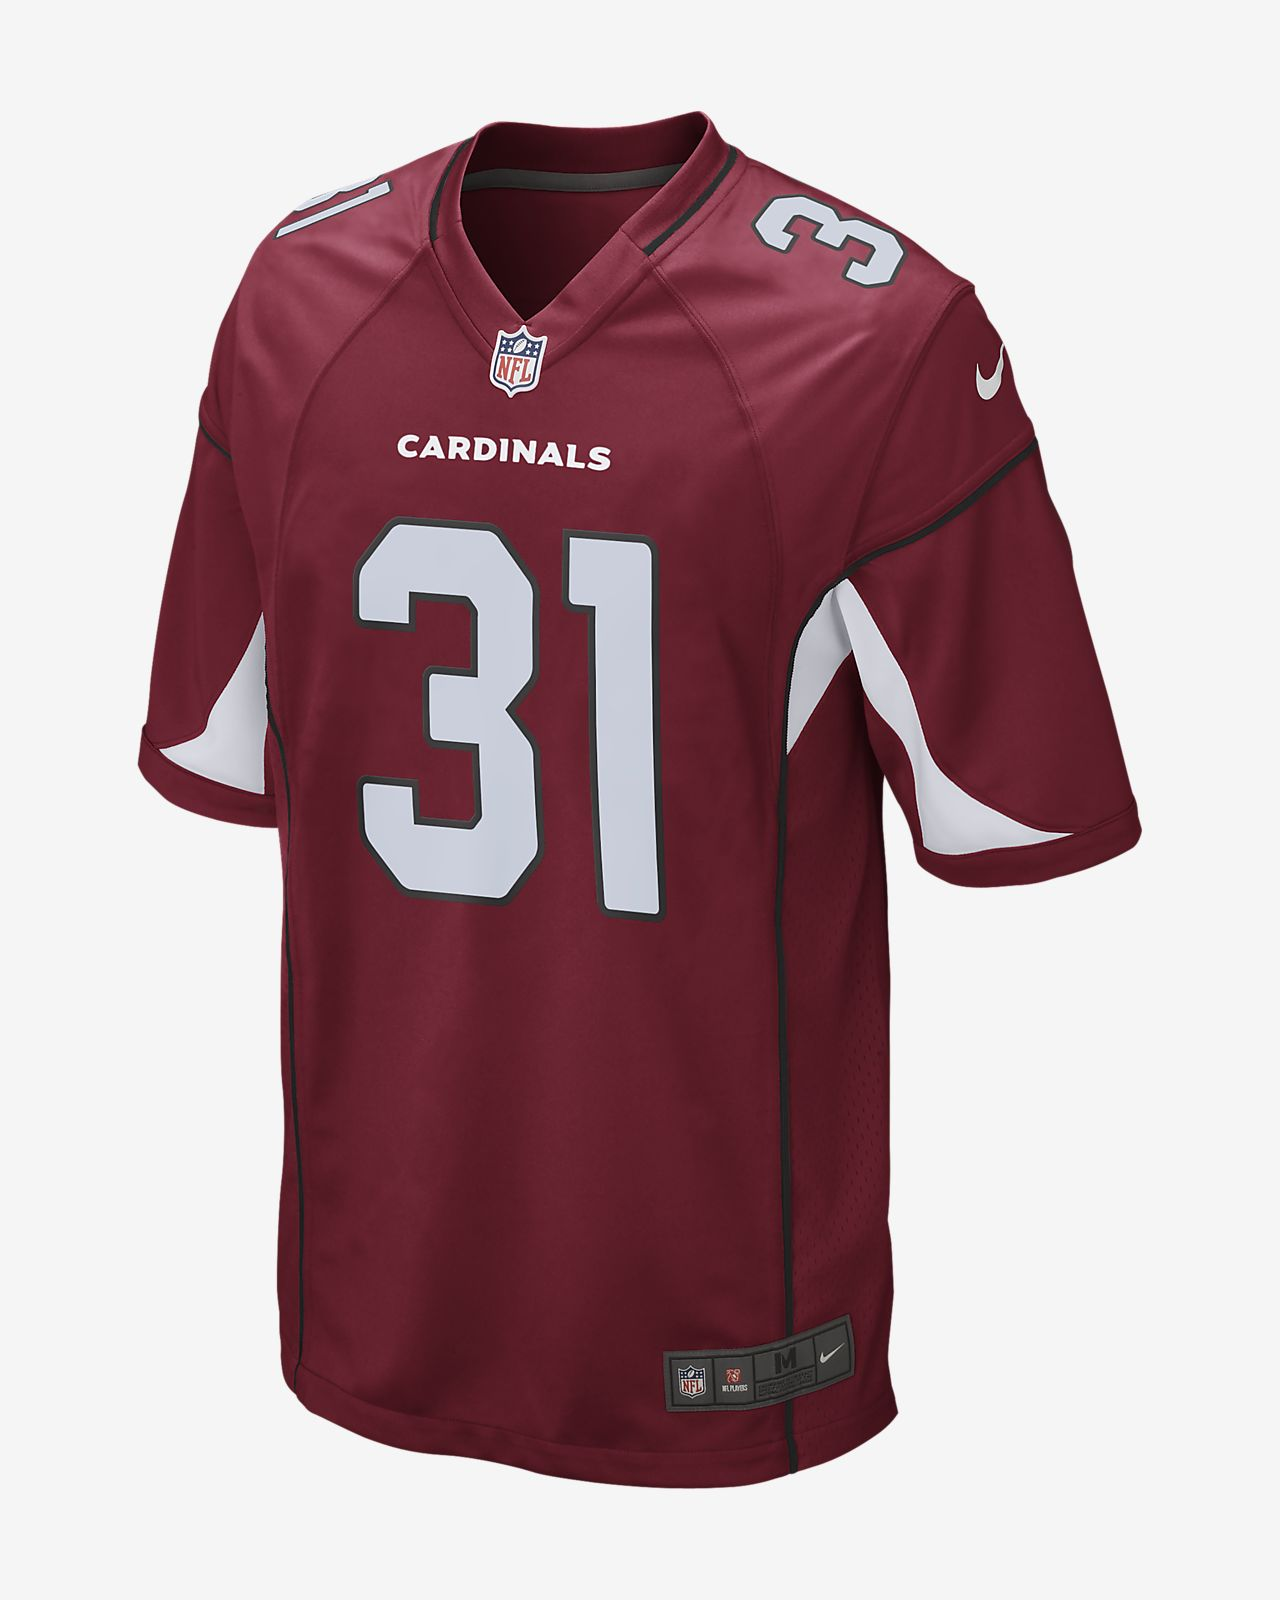 cardinals johnson jersey